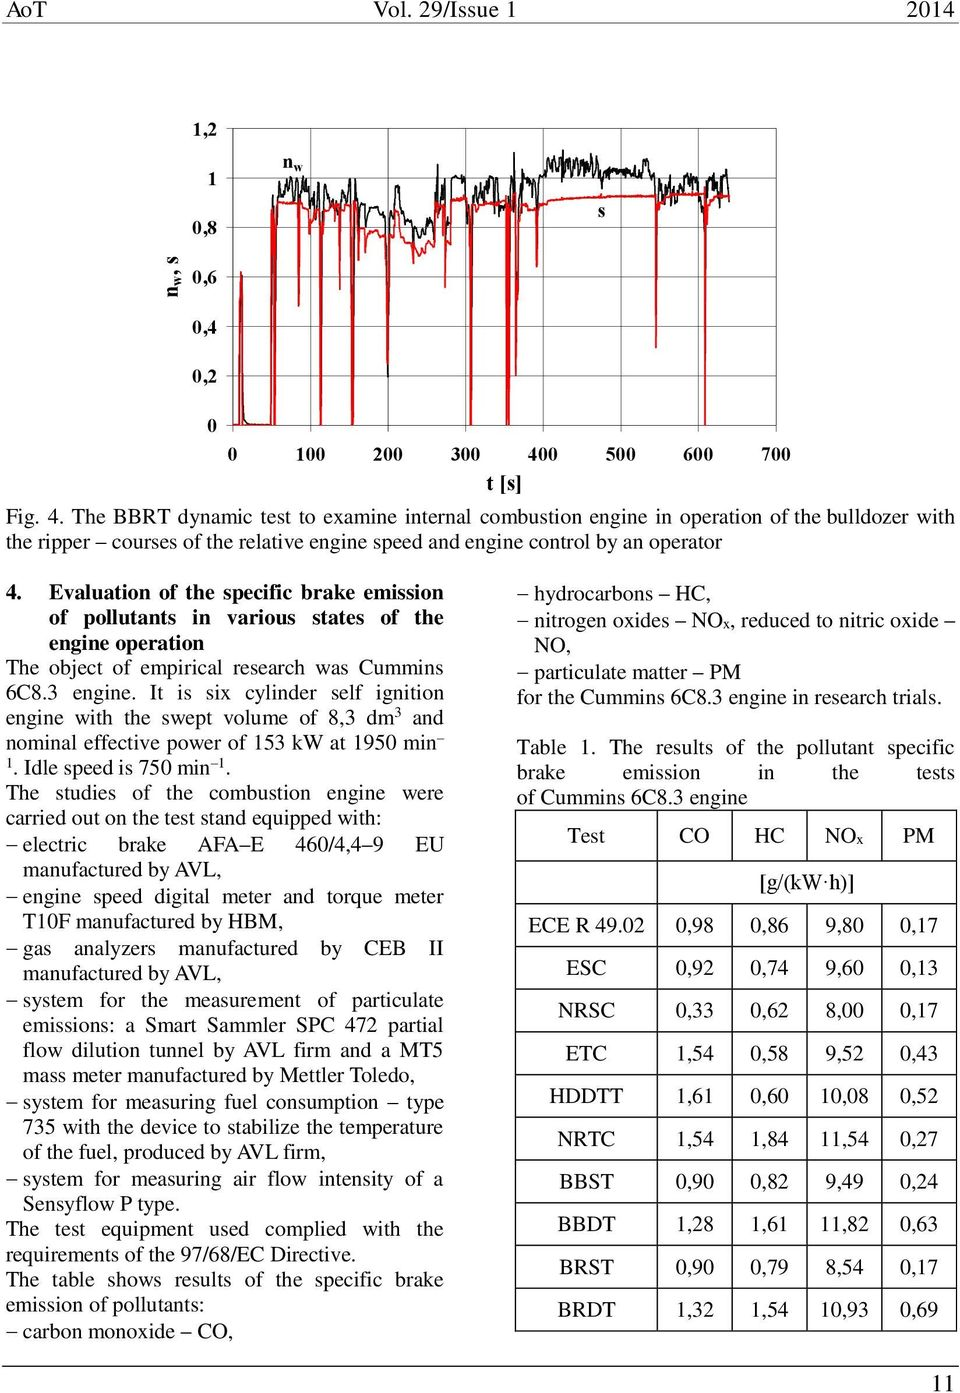 Evaluation of the specific brake emission of pollutants in various states of the engine operation The object of empirical research was Cummins 6C8.3 engine.